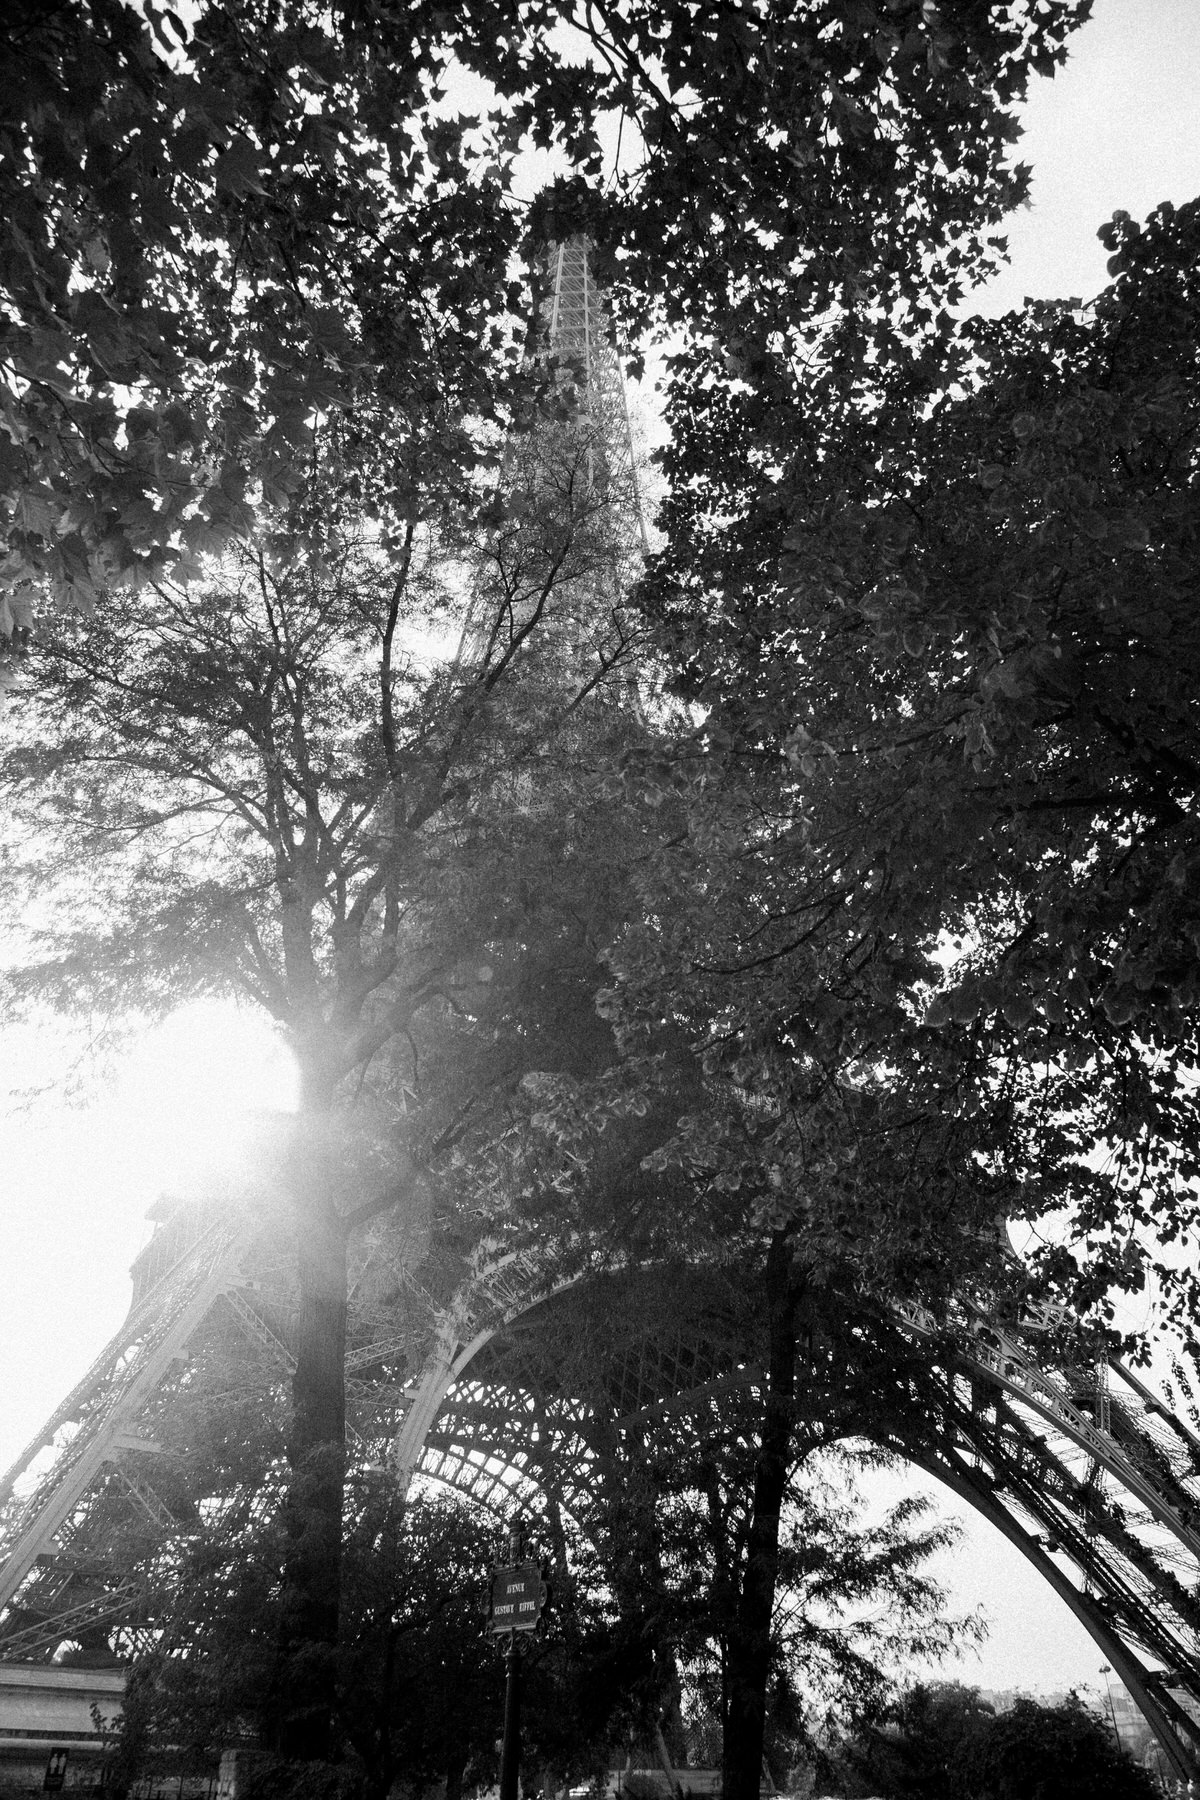 Eiffel-Tower-Paris-France-black-and-white-fine-art-photography-by-Studio-L-photographer-Laura-Schneider-_4668